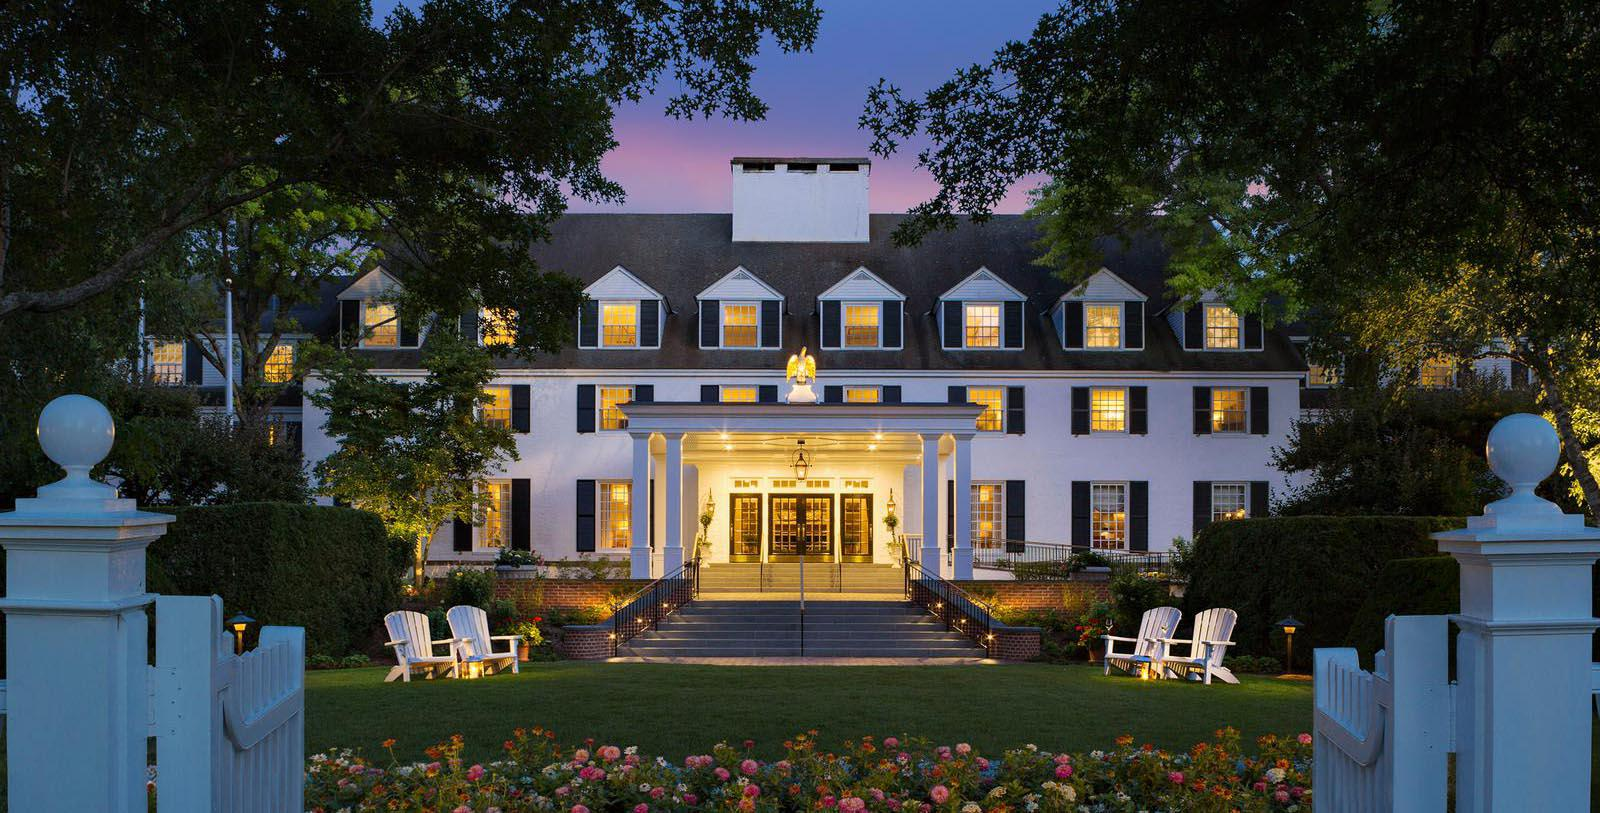 Image of hotel exterior Woodstock Inn & Resort, 1793, Member of Historic Hotels of America, in Woodstock, Vermont, Overview